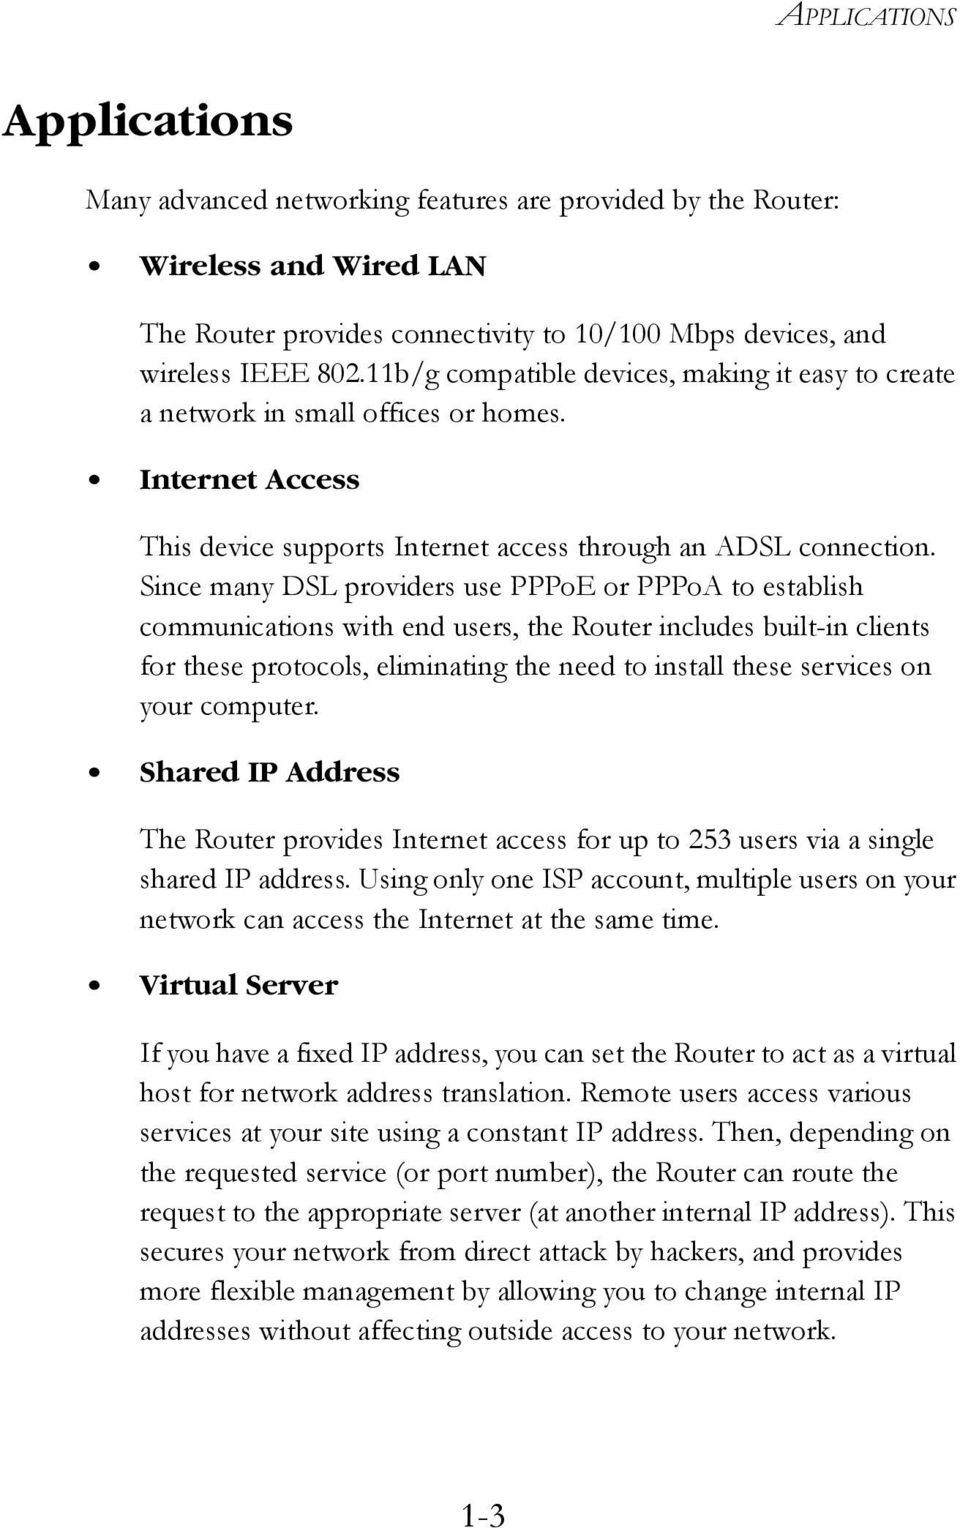 Since many DSL providers use PPPoE or PPPoA to establish communications with end users, the Router includes built-in clients for these protocols, eliminating the need to install these services on